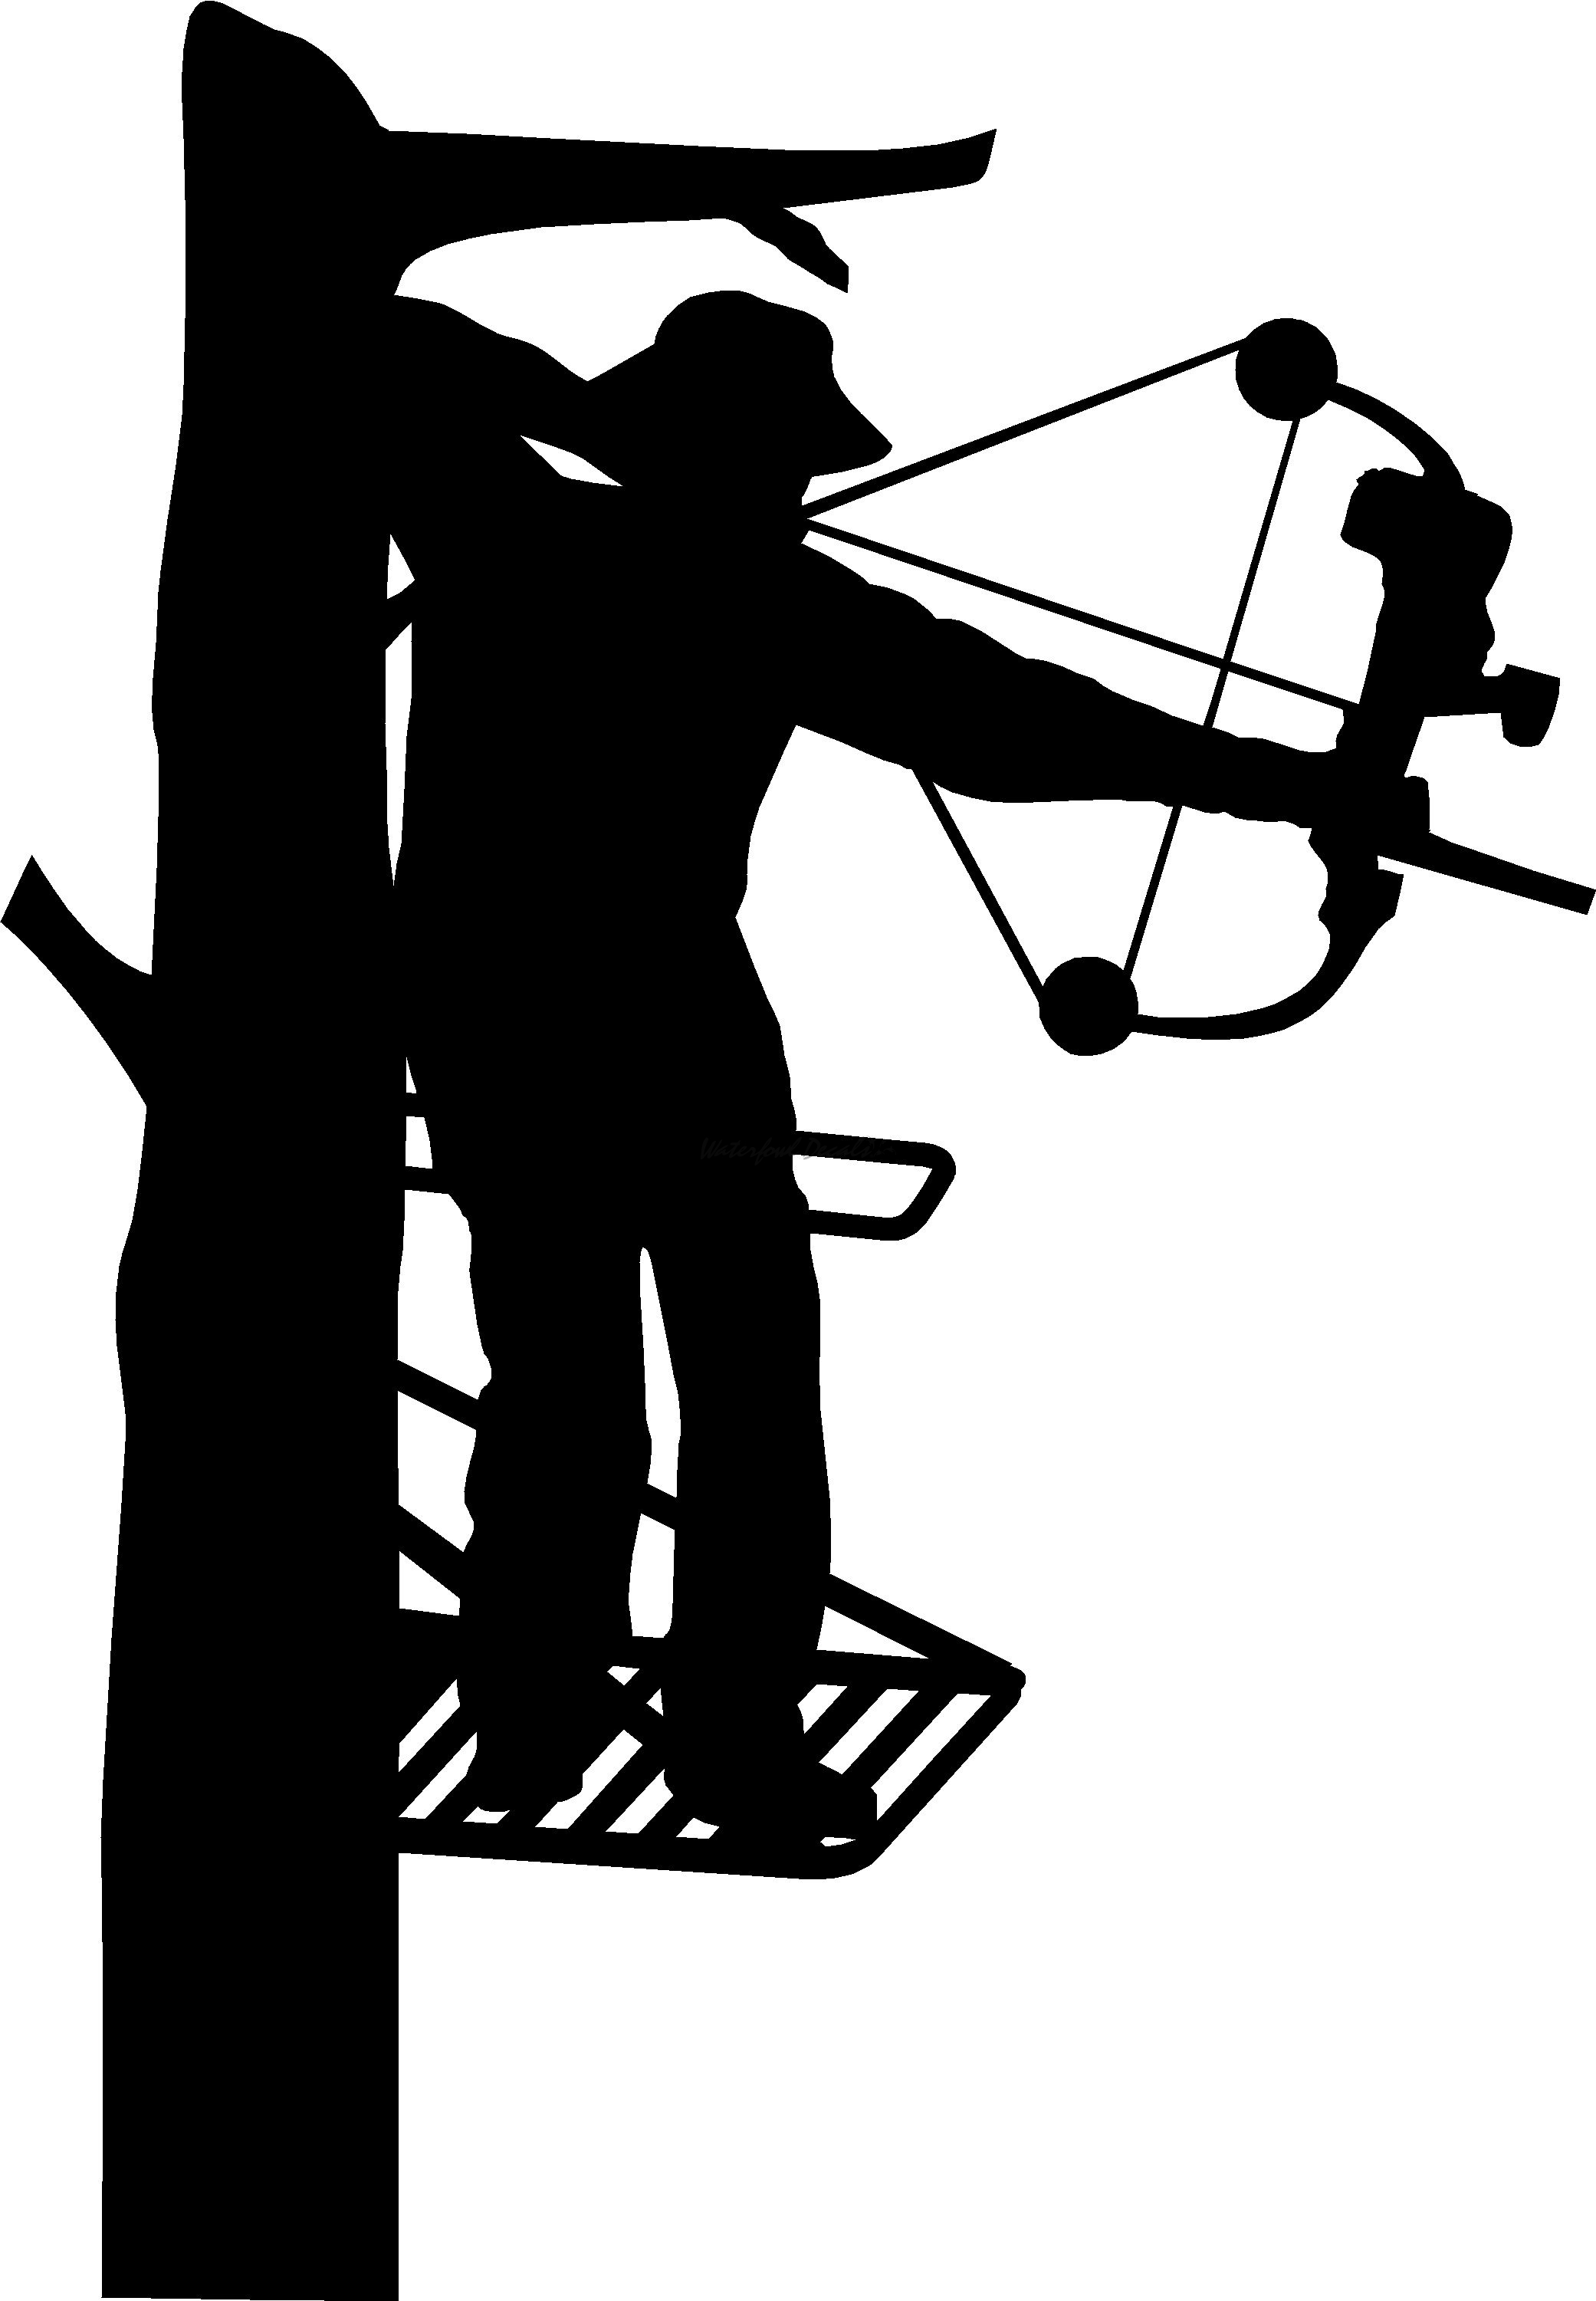 Bowhunter clipart 8 » Clipart Station.